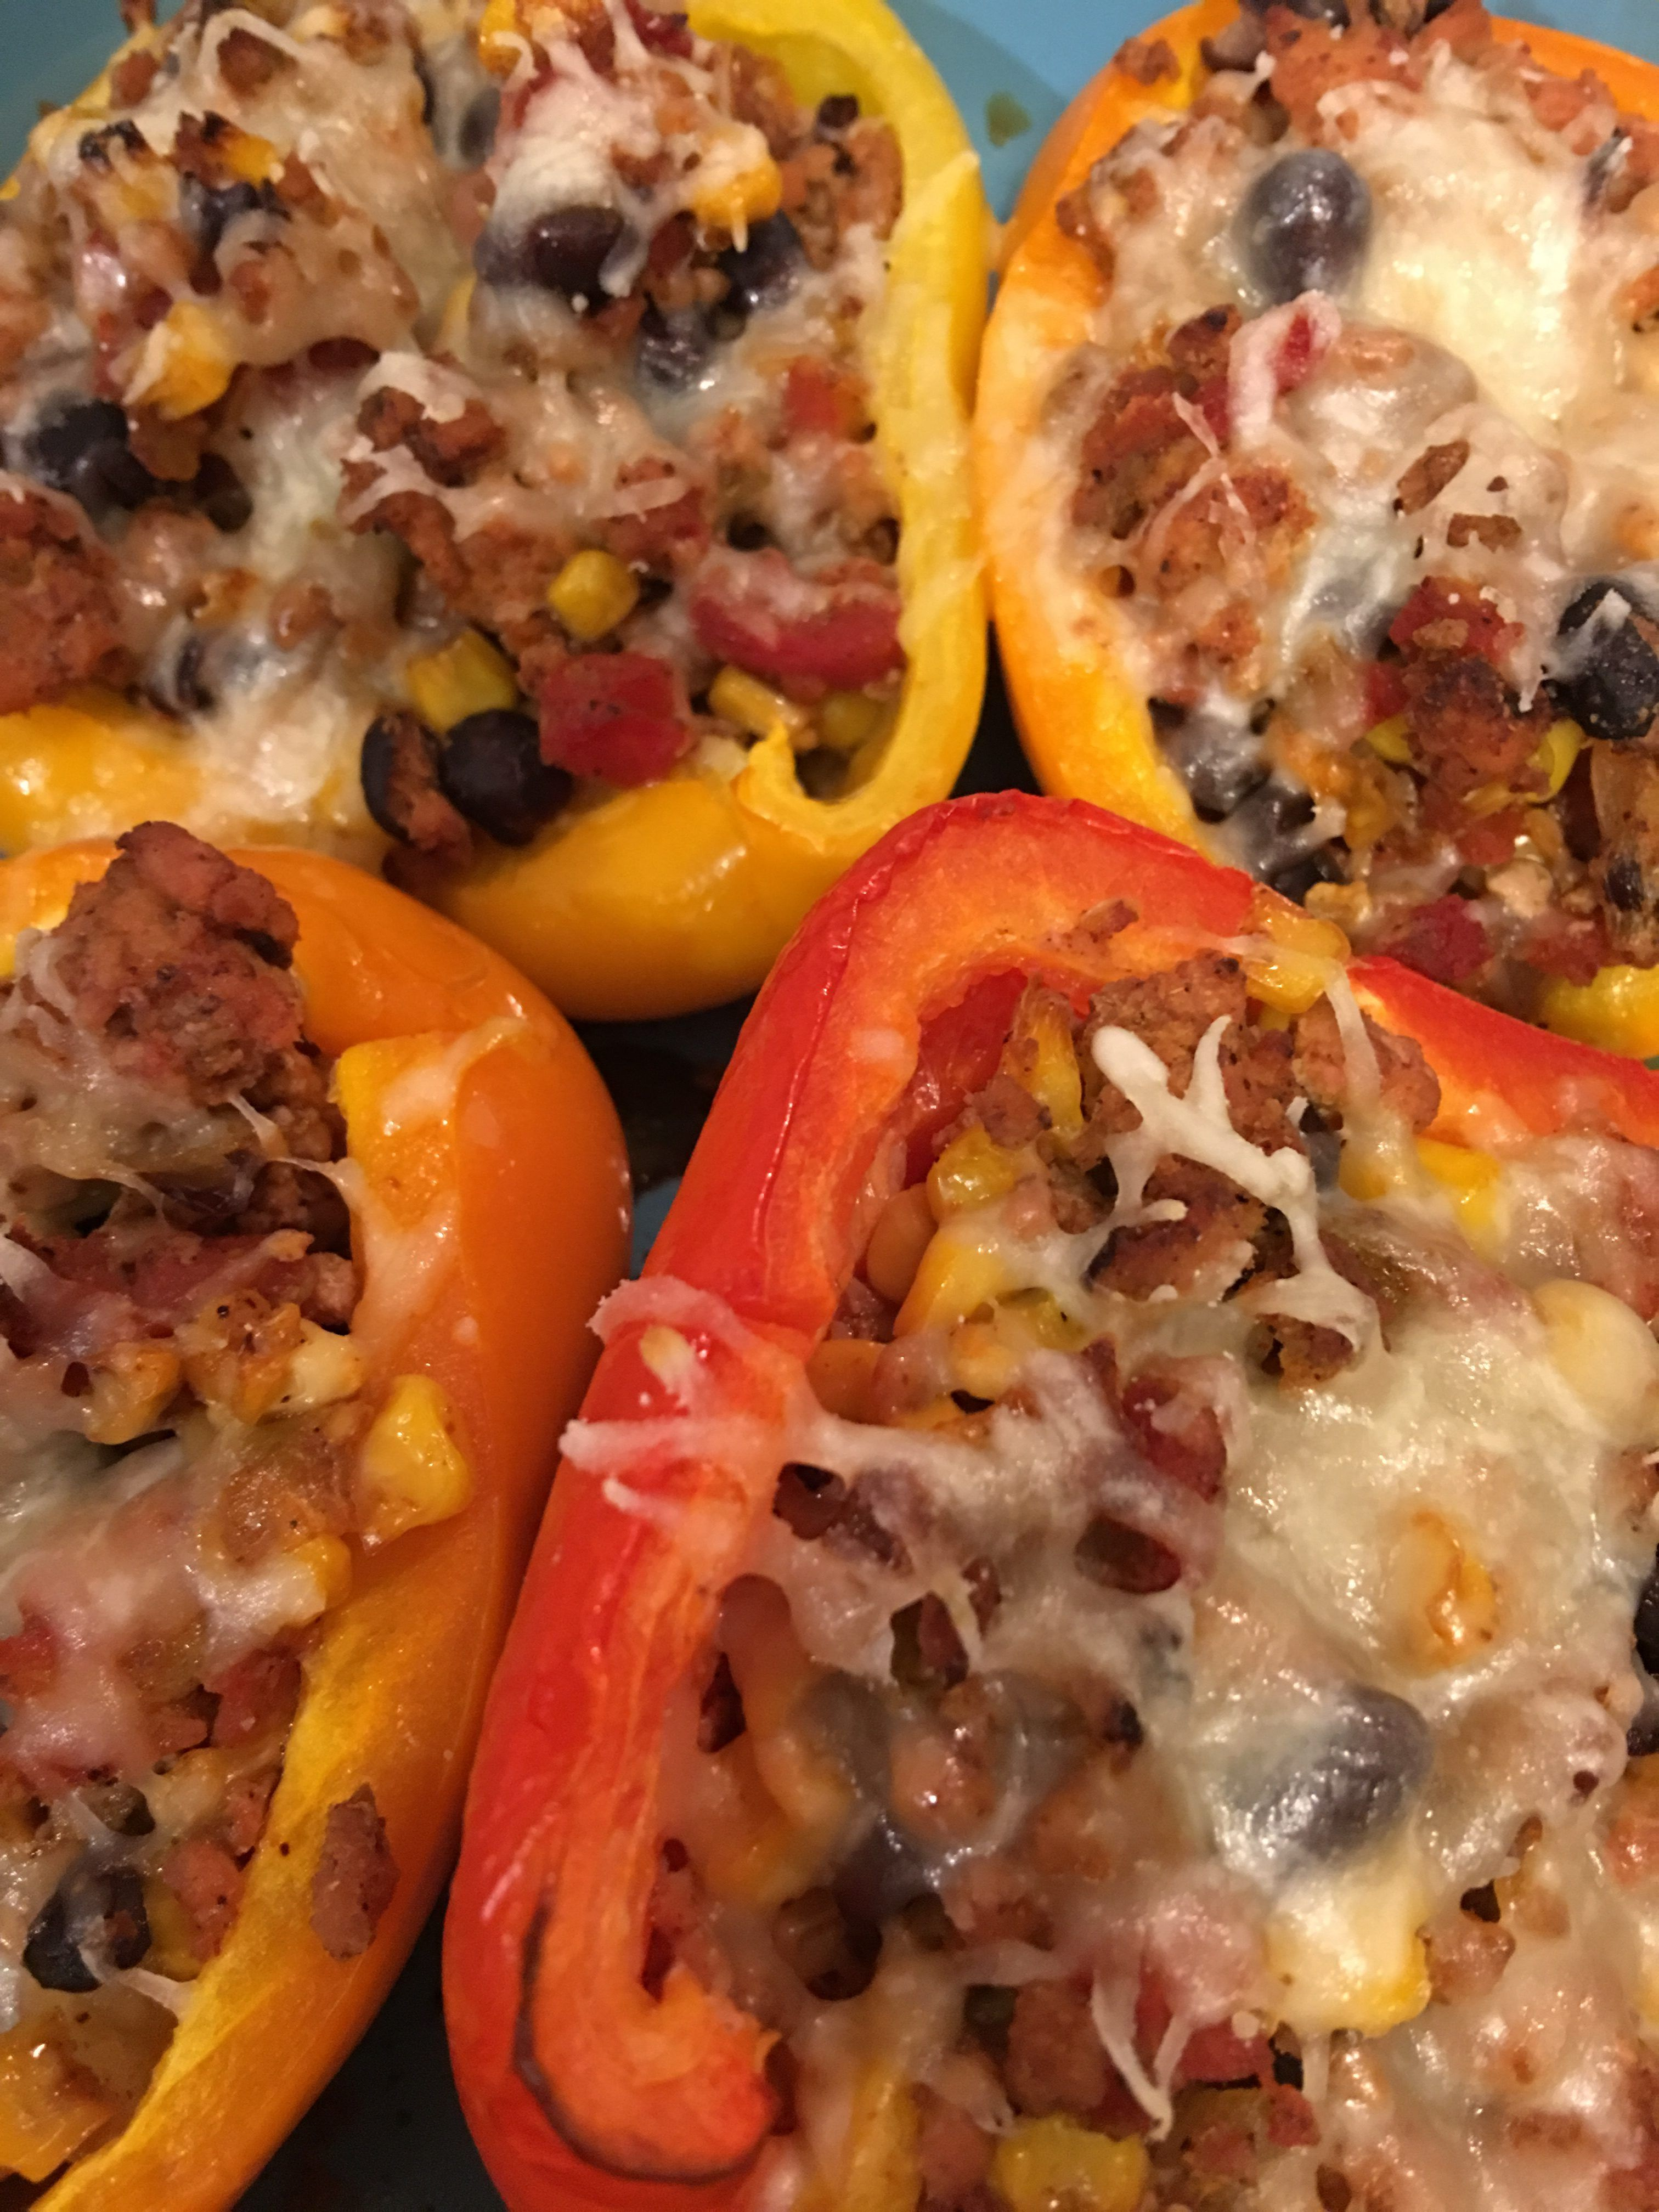 Ground Chicken Stuffed Peppers Stuffed Peppers Ground Chicken Ground Chicken Stuffed Peppers